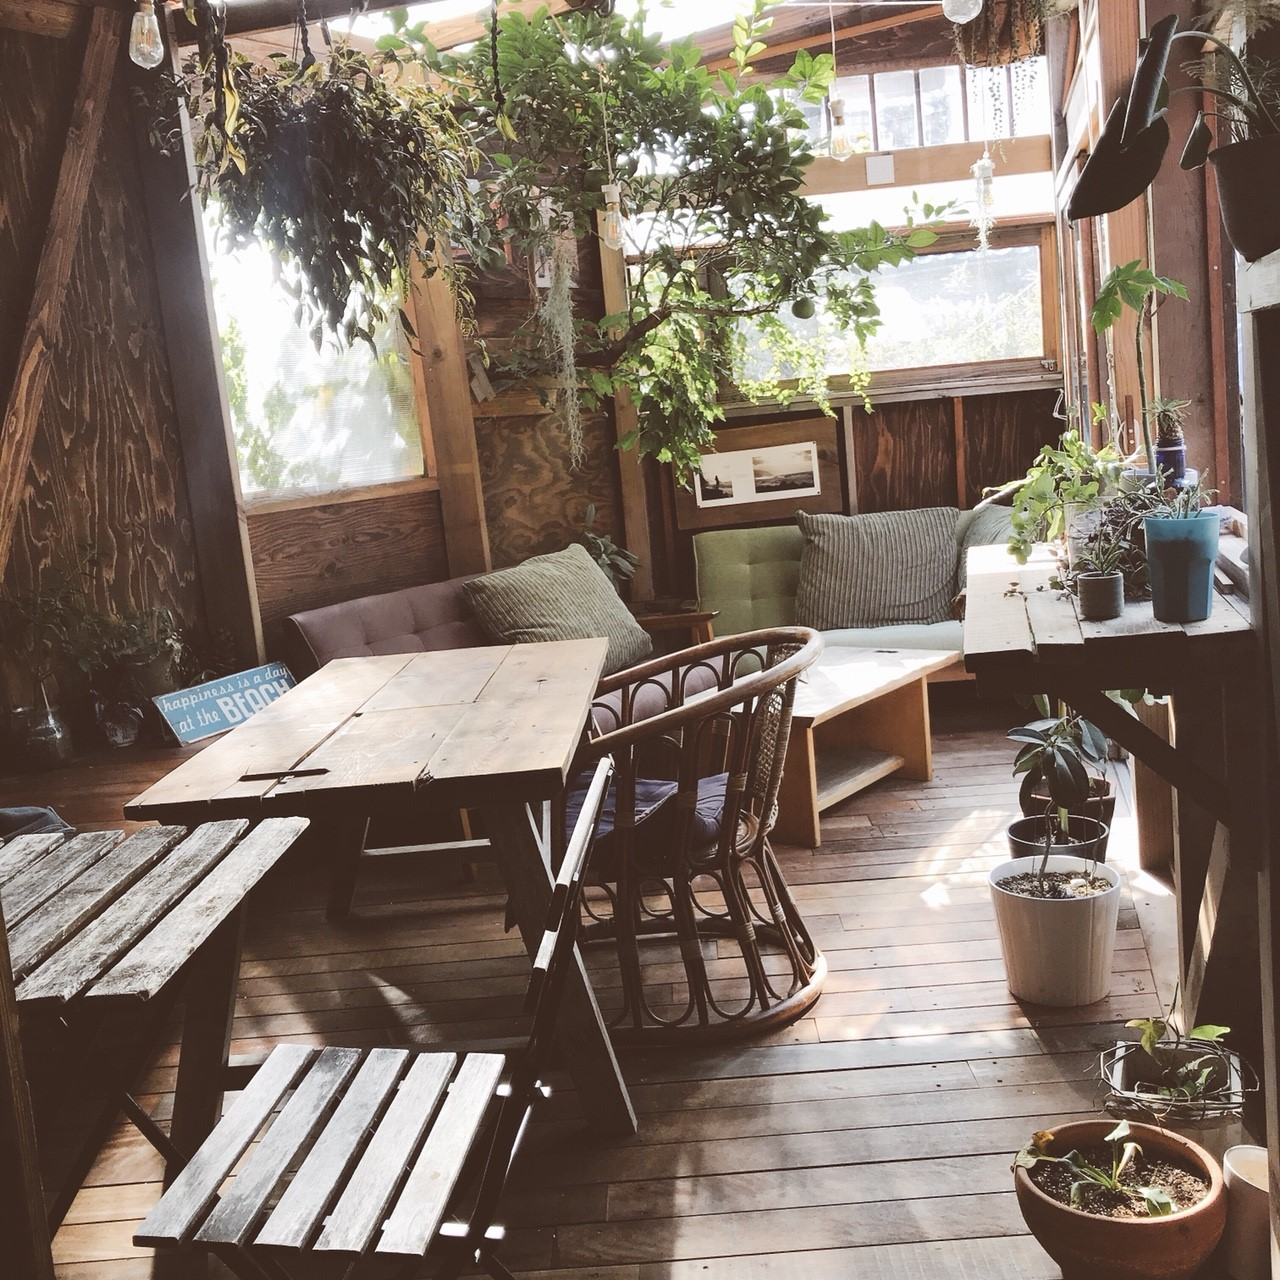 Seedling Cafe店内